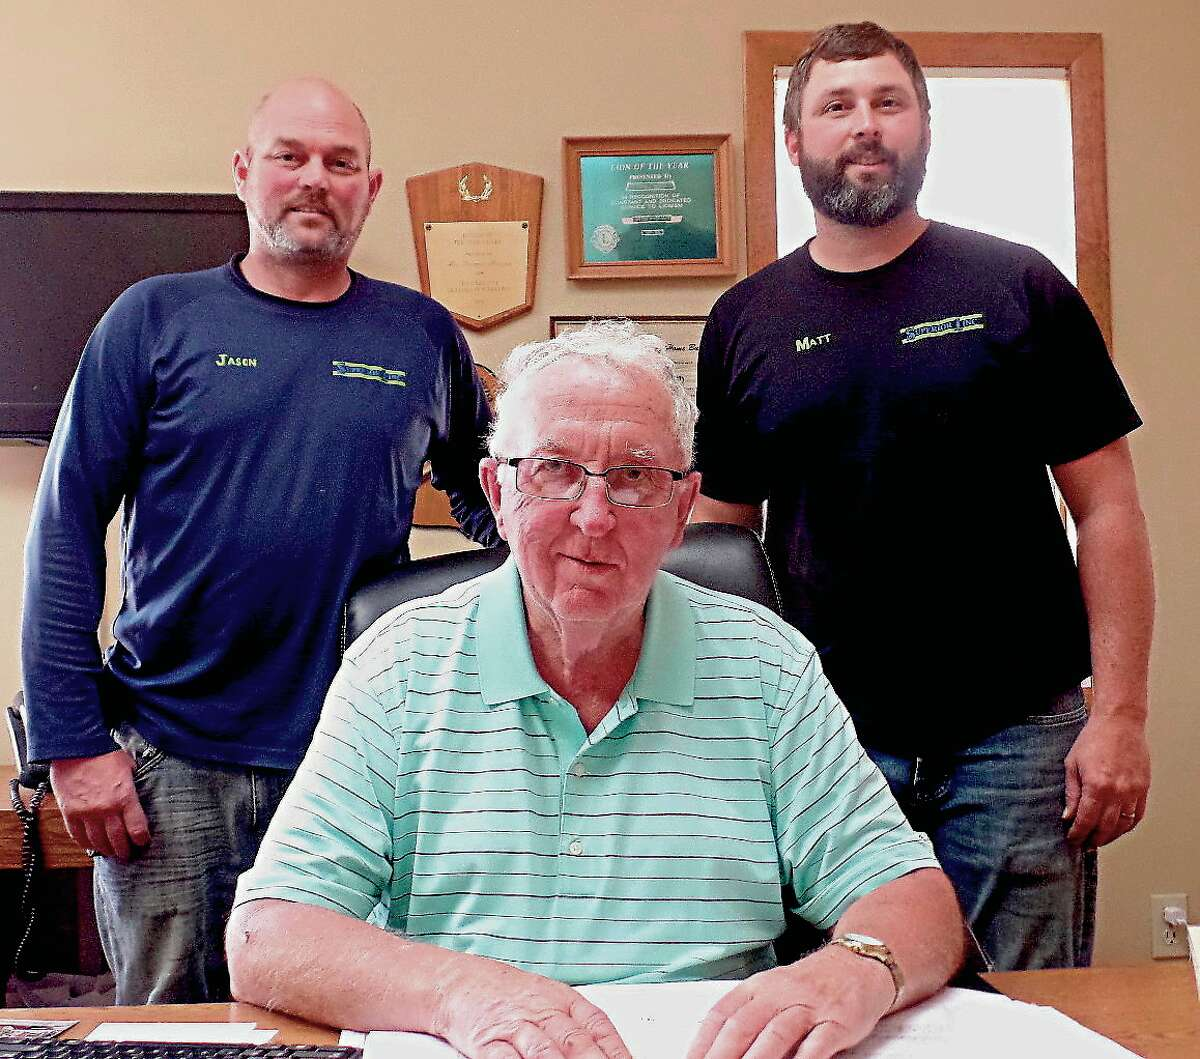 Tom Herron, center, sold his company, Herron Building, to (from left) brothers Jason and Matt Klein, who also own Superior 1 Plumbing and Heating in Cass City.